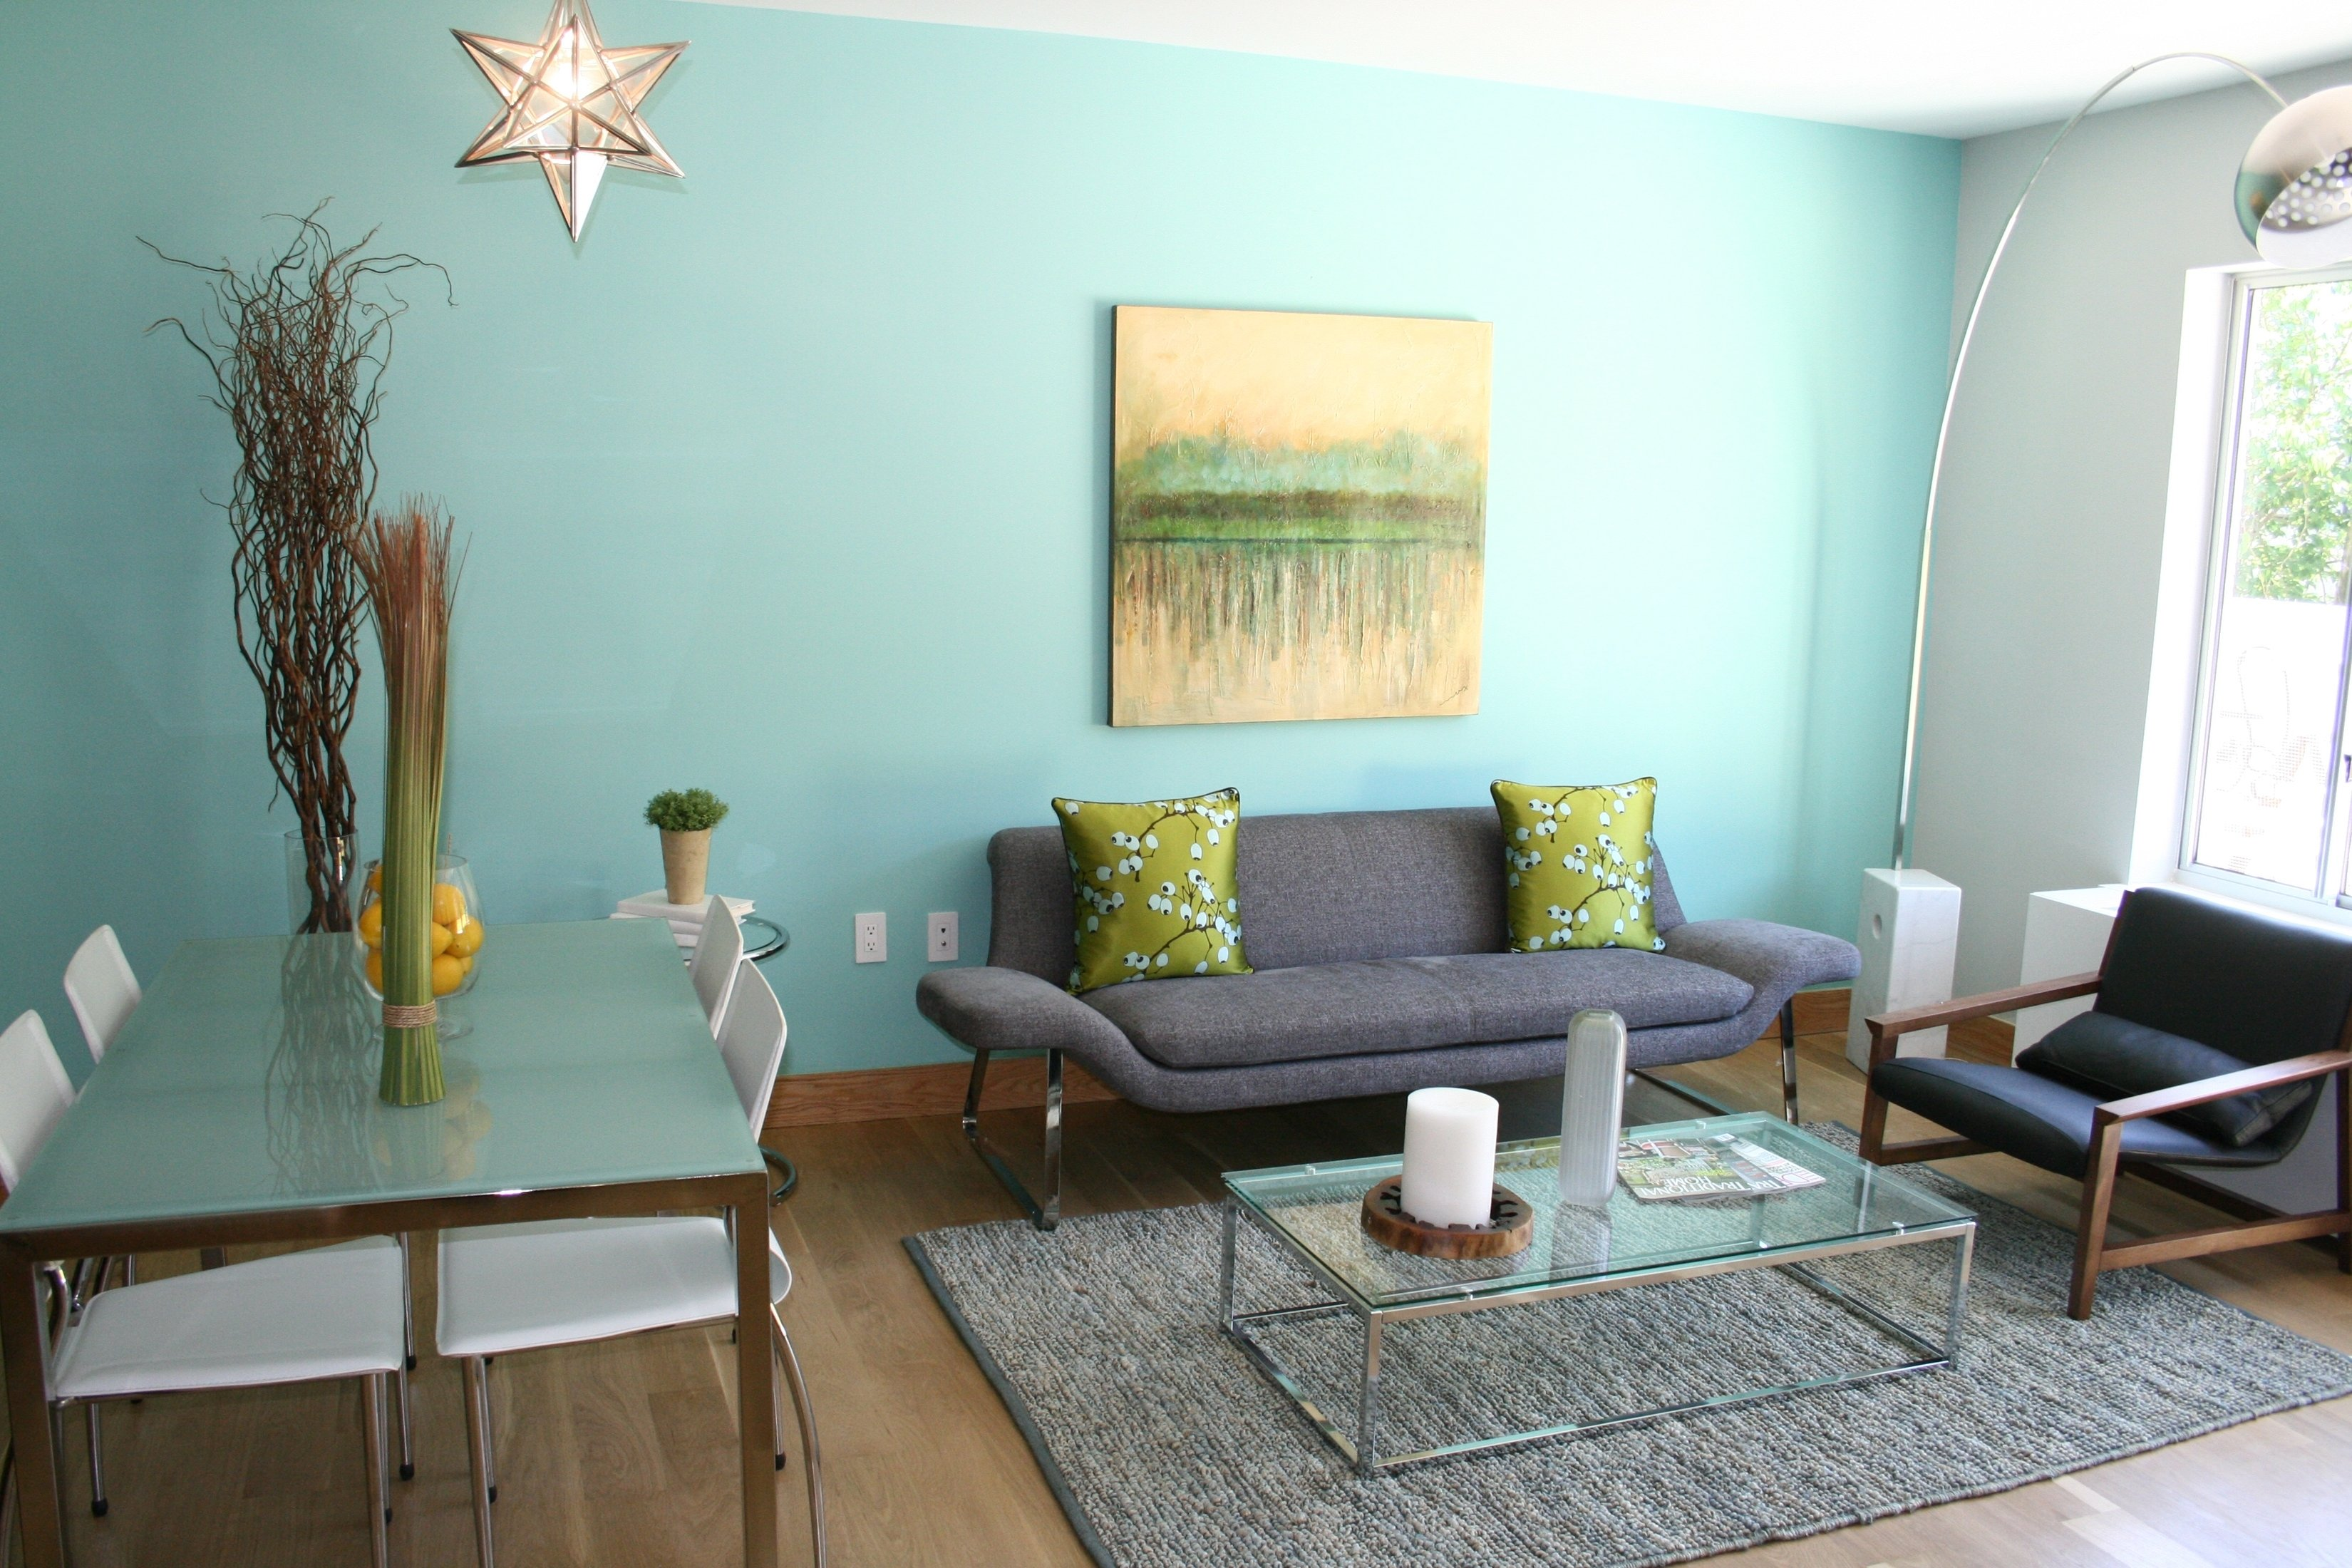 10 Beautiful Decorating Ideas On A Budget image of marvelous living room ideas for small apartments for 2020